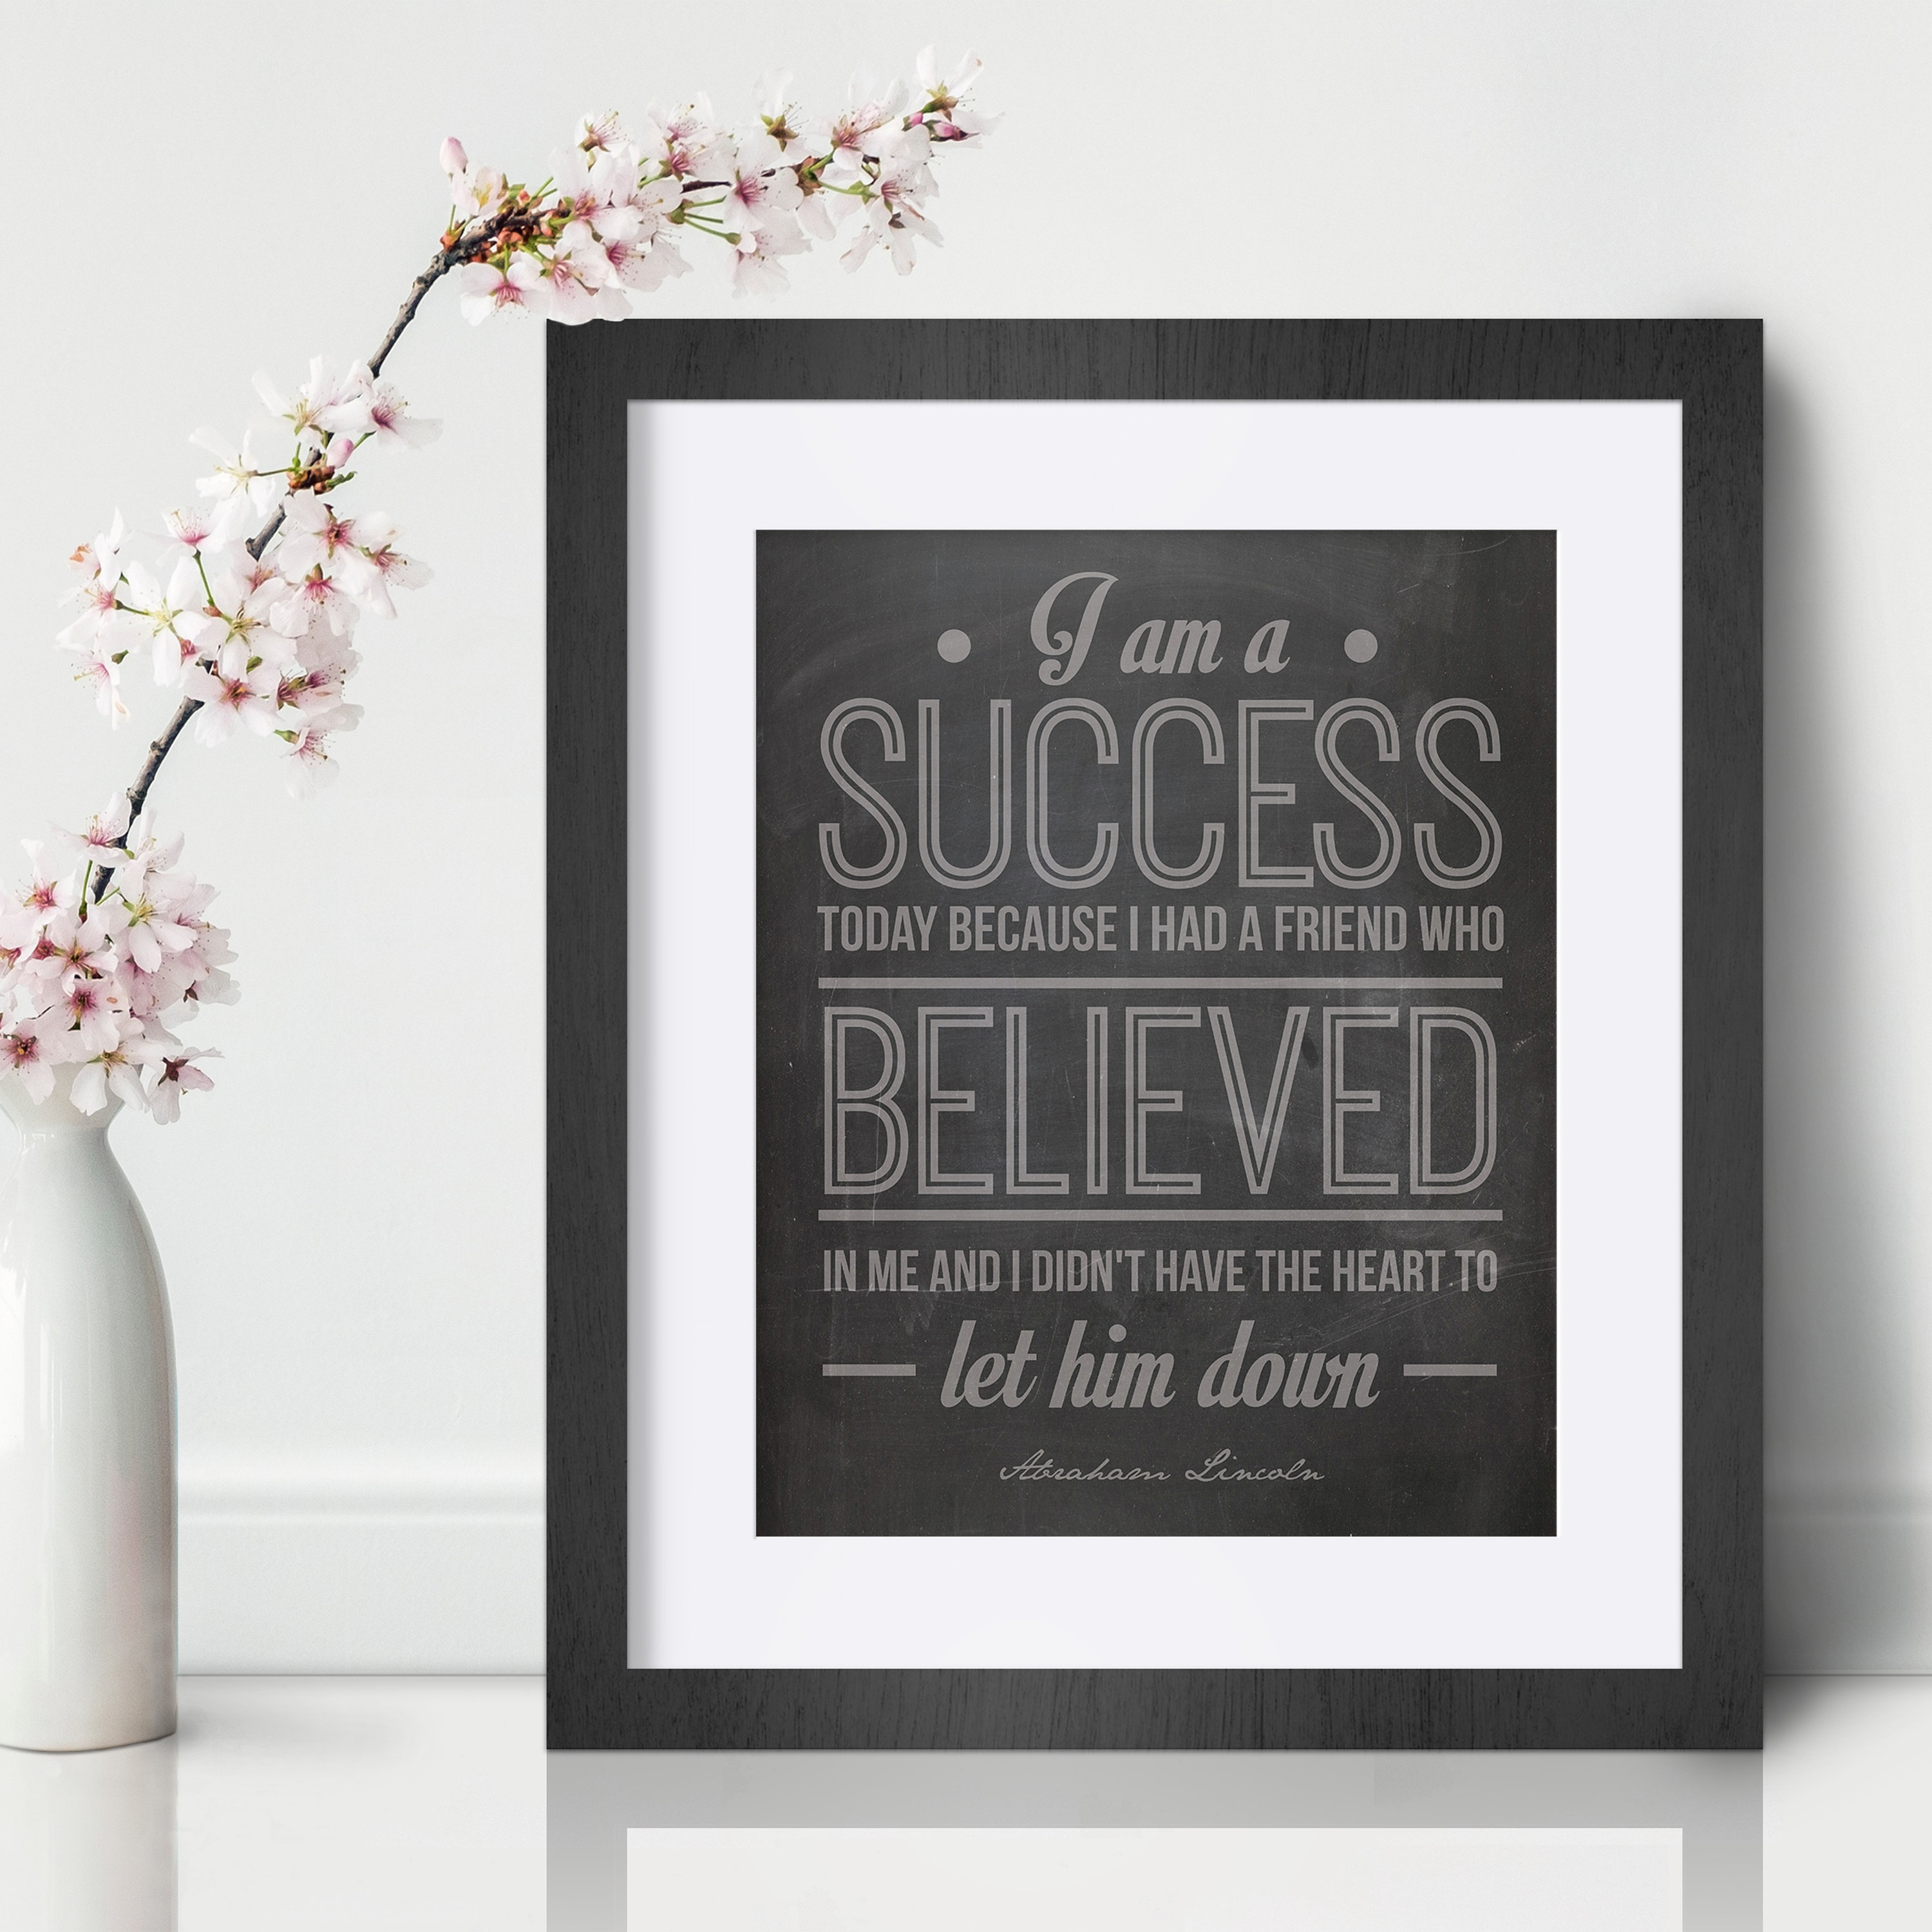 Blaine Lee Inspirational Wall Art Print Motivational Quote Poster Decor Gift her